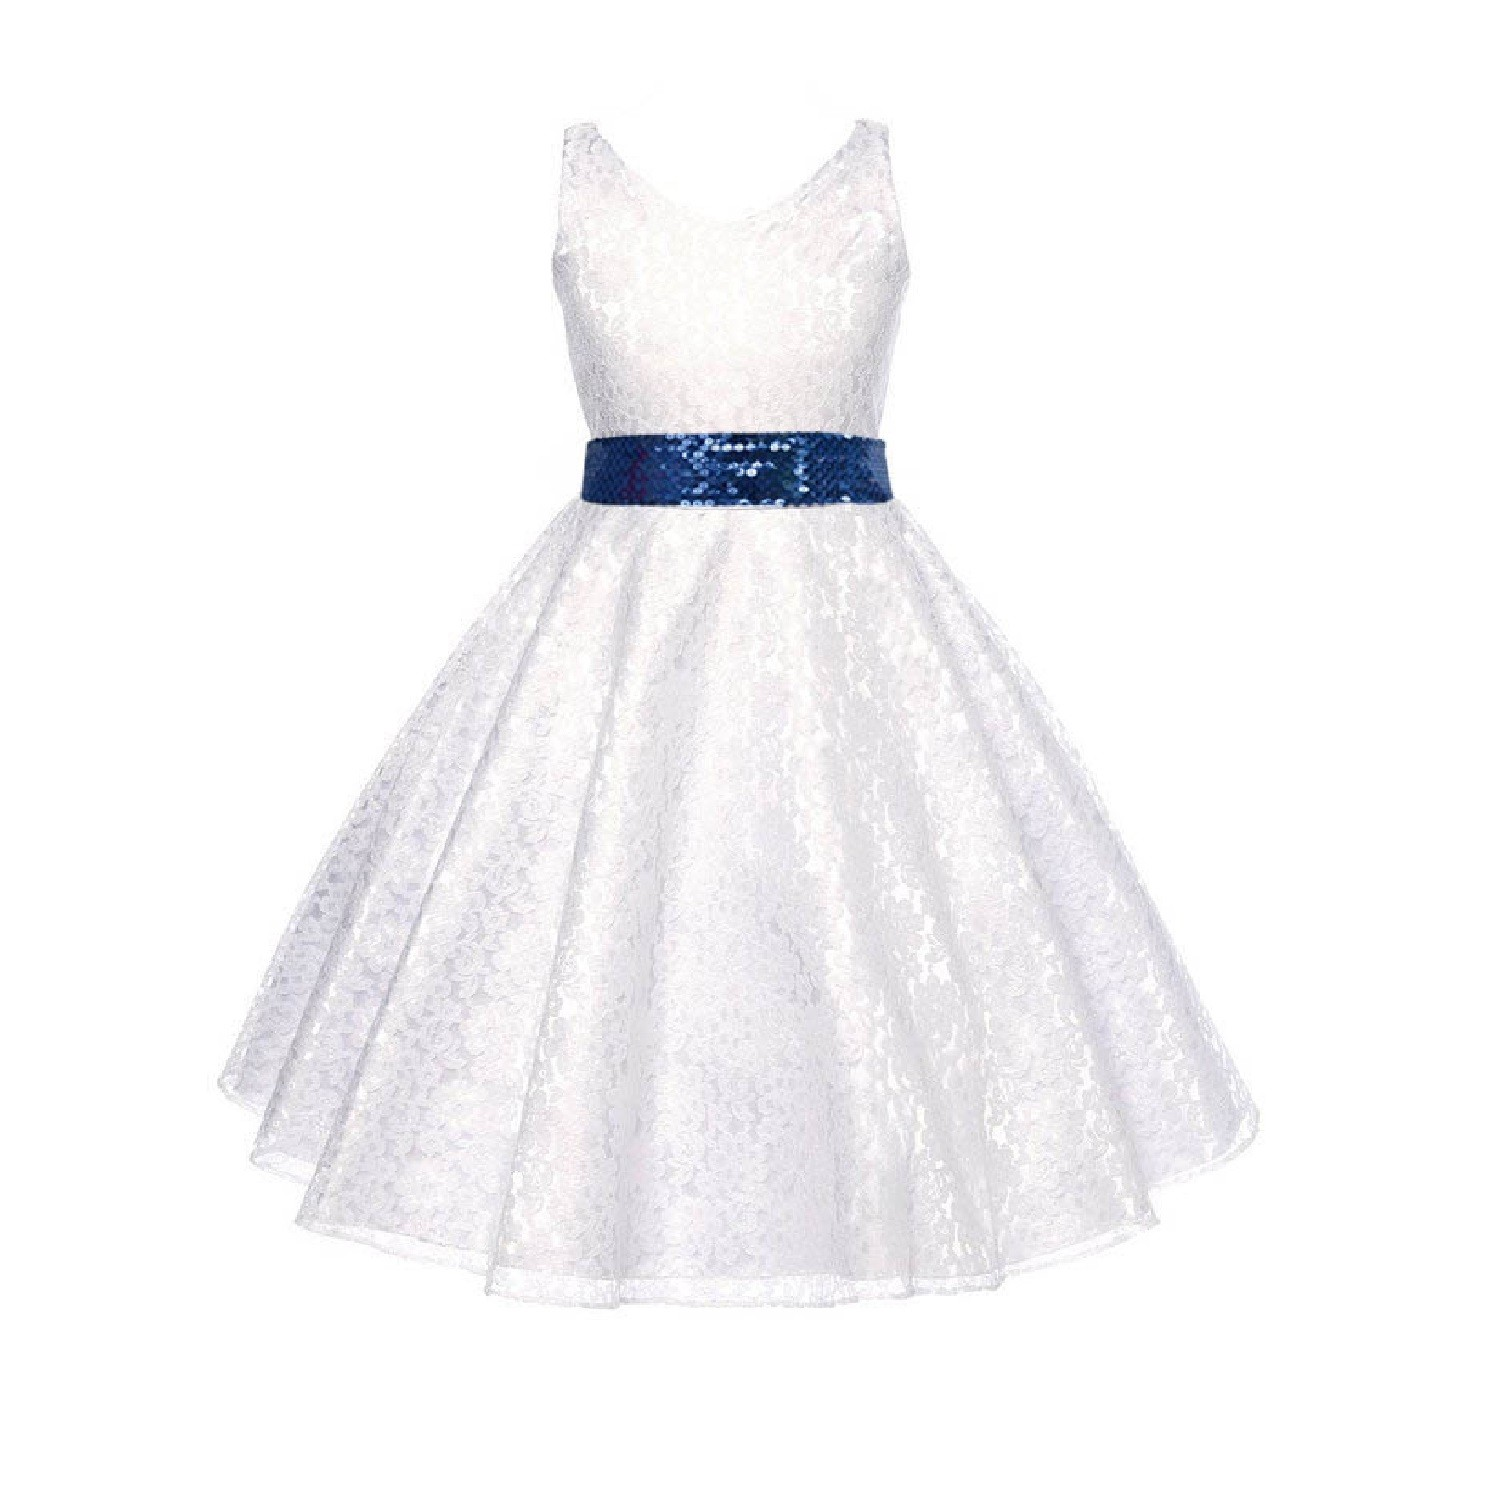 3bee904cea White Floral Lace Overlay V-Neck Navy Sequin Flower Girl Dress 166mh ...